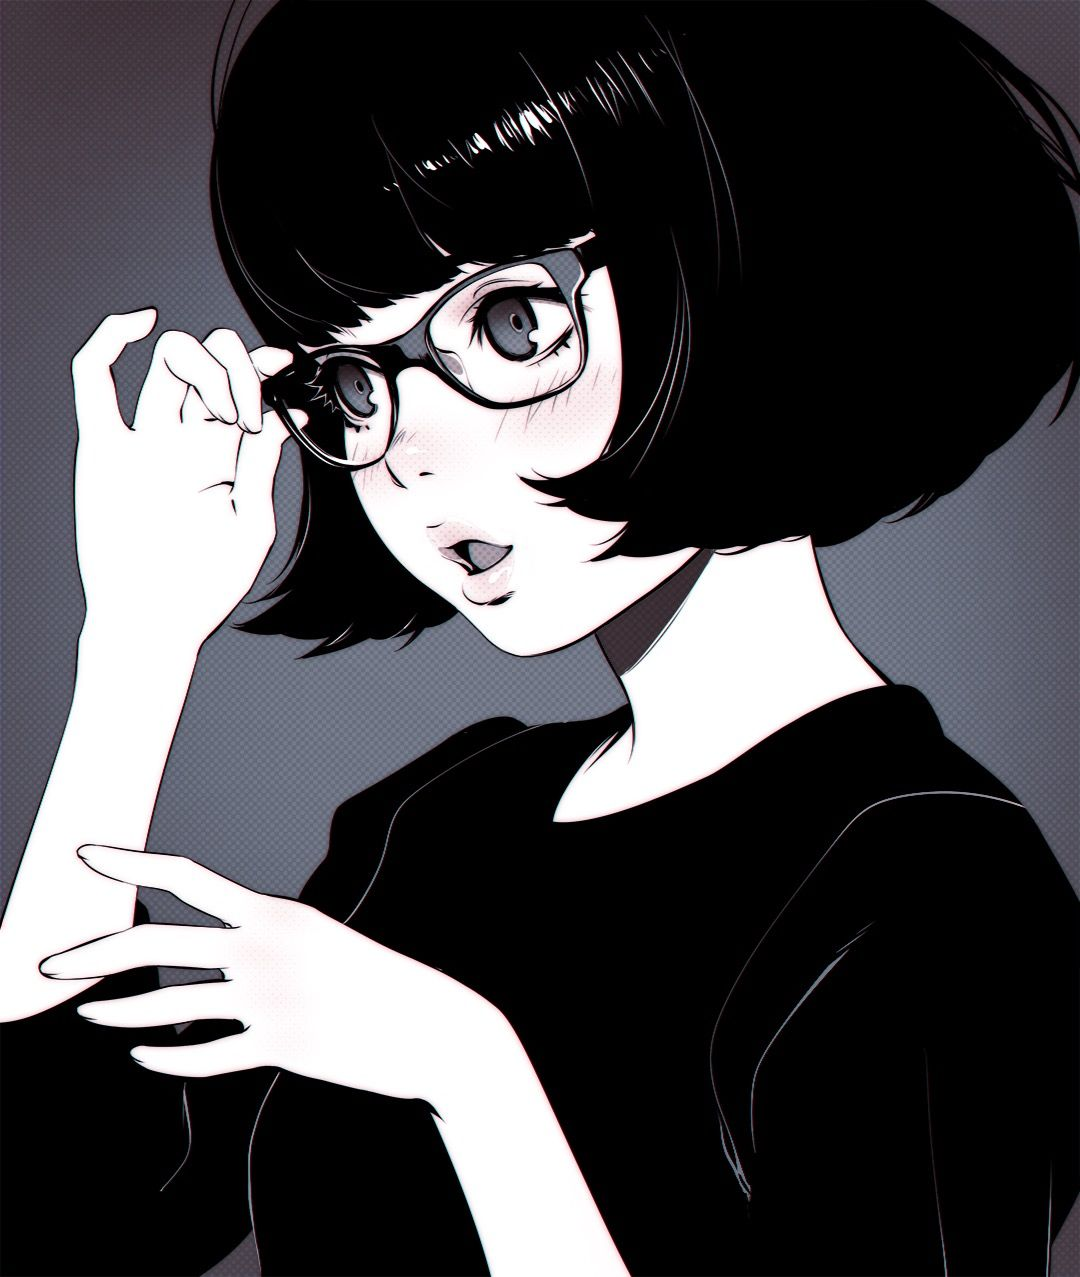 anime girl short hair glasses black style ngh� thu��t